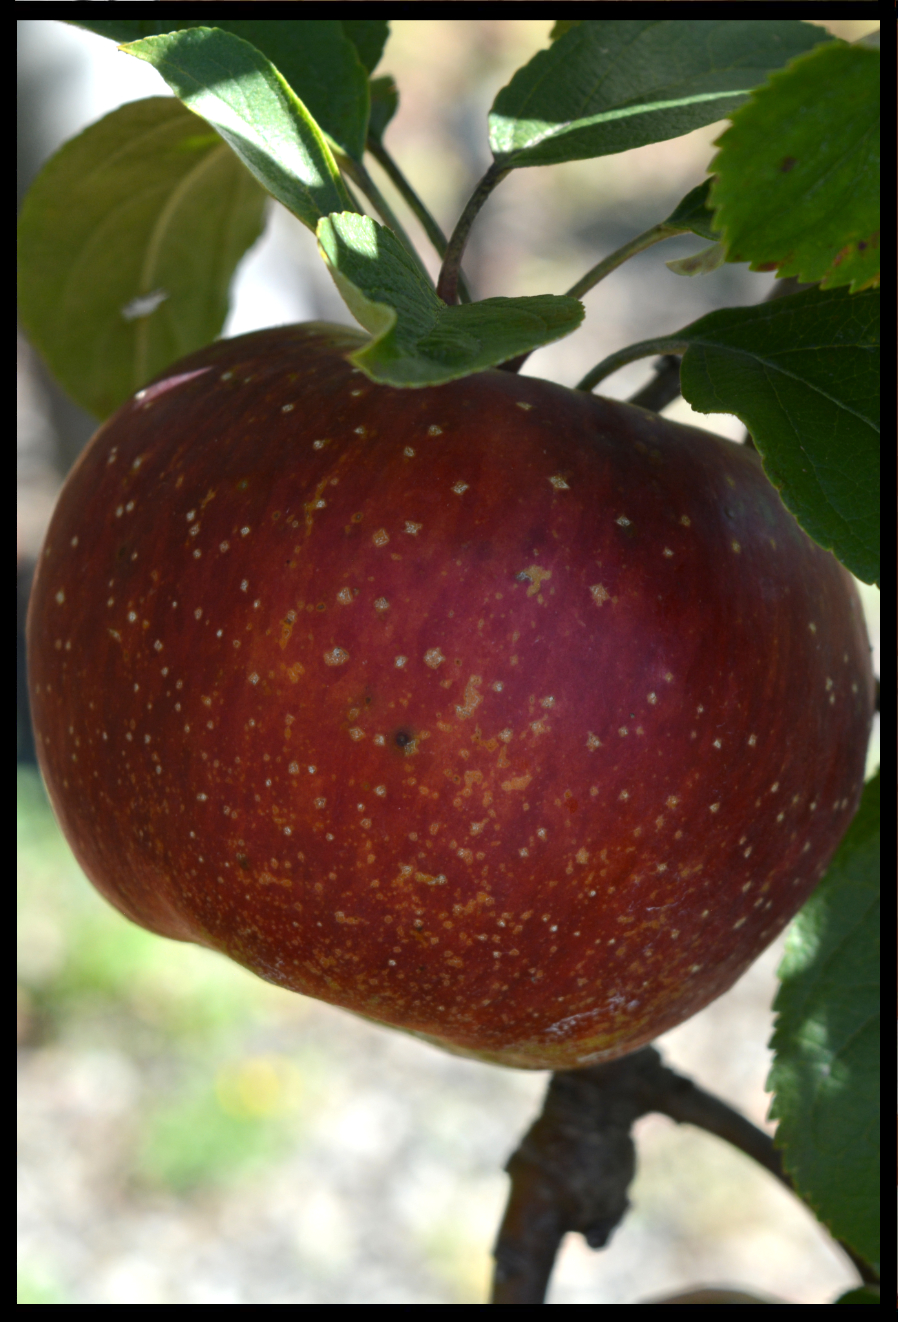 red apple with spots of tan and yellow